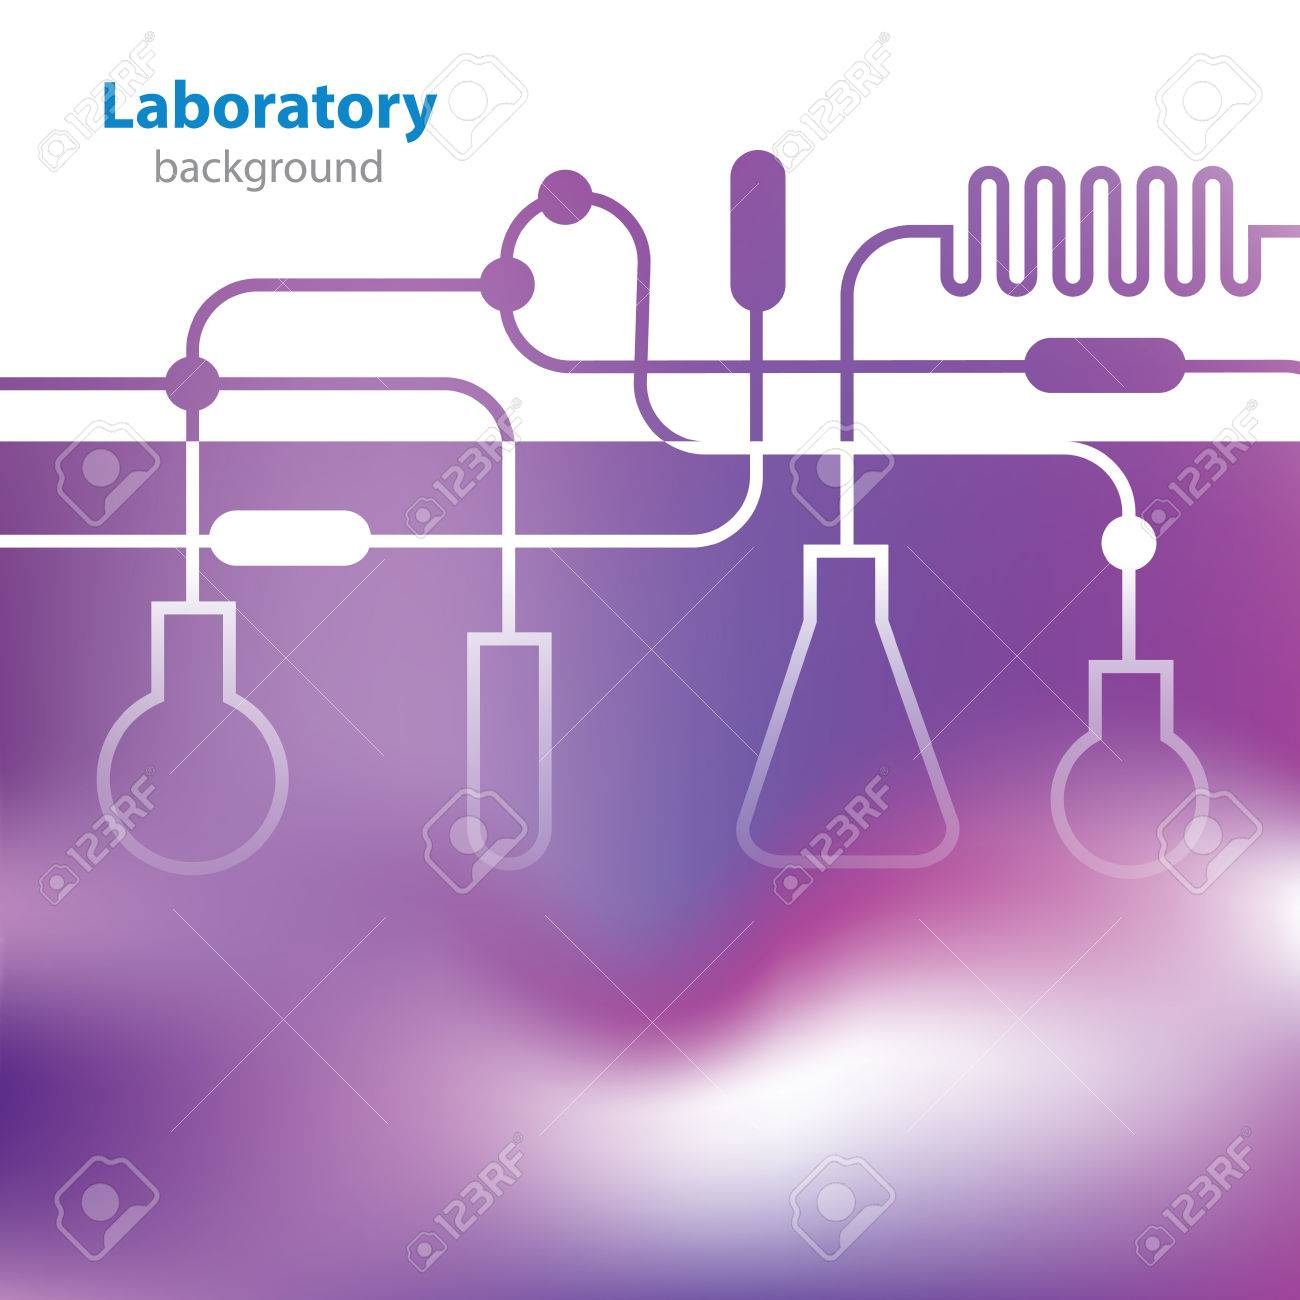 Abstract purple medical laboratory background - 25327055